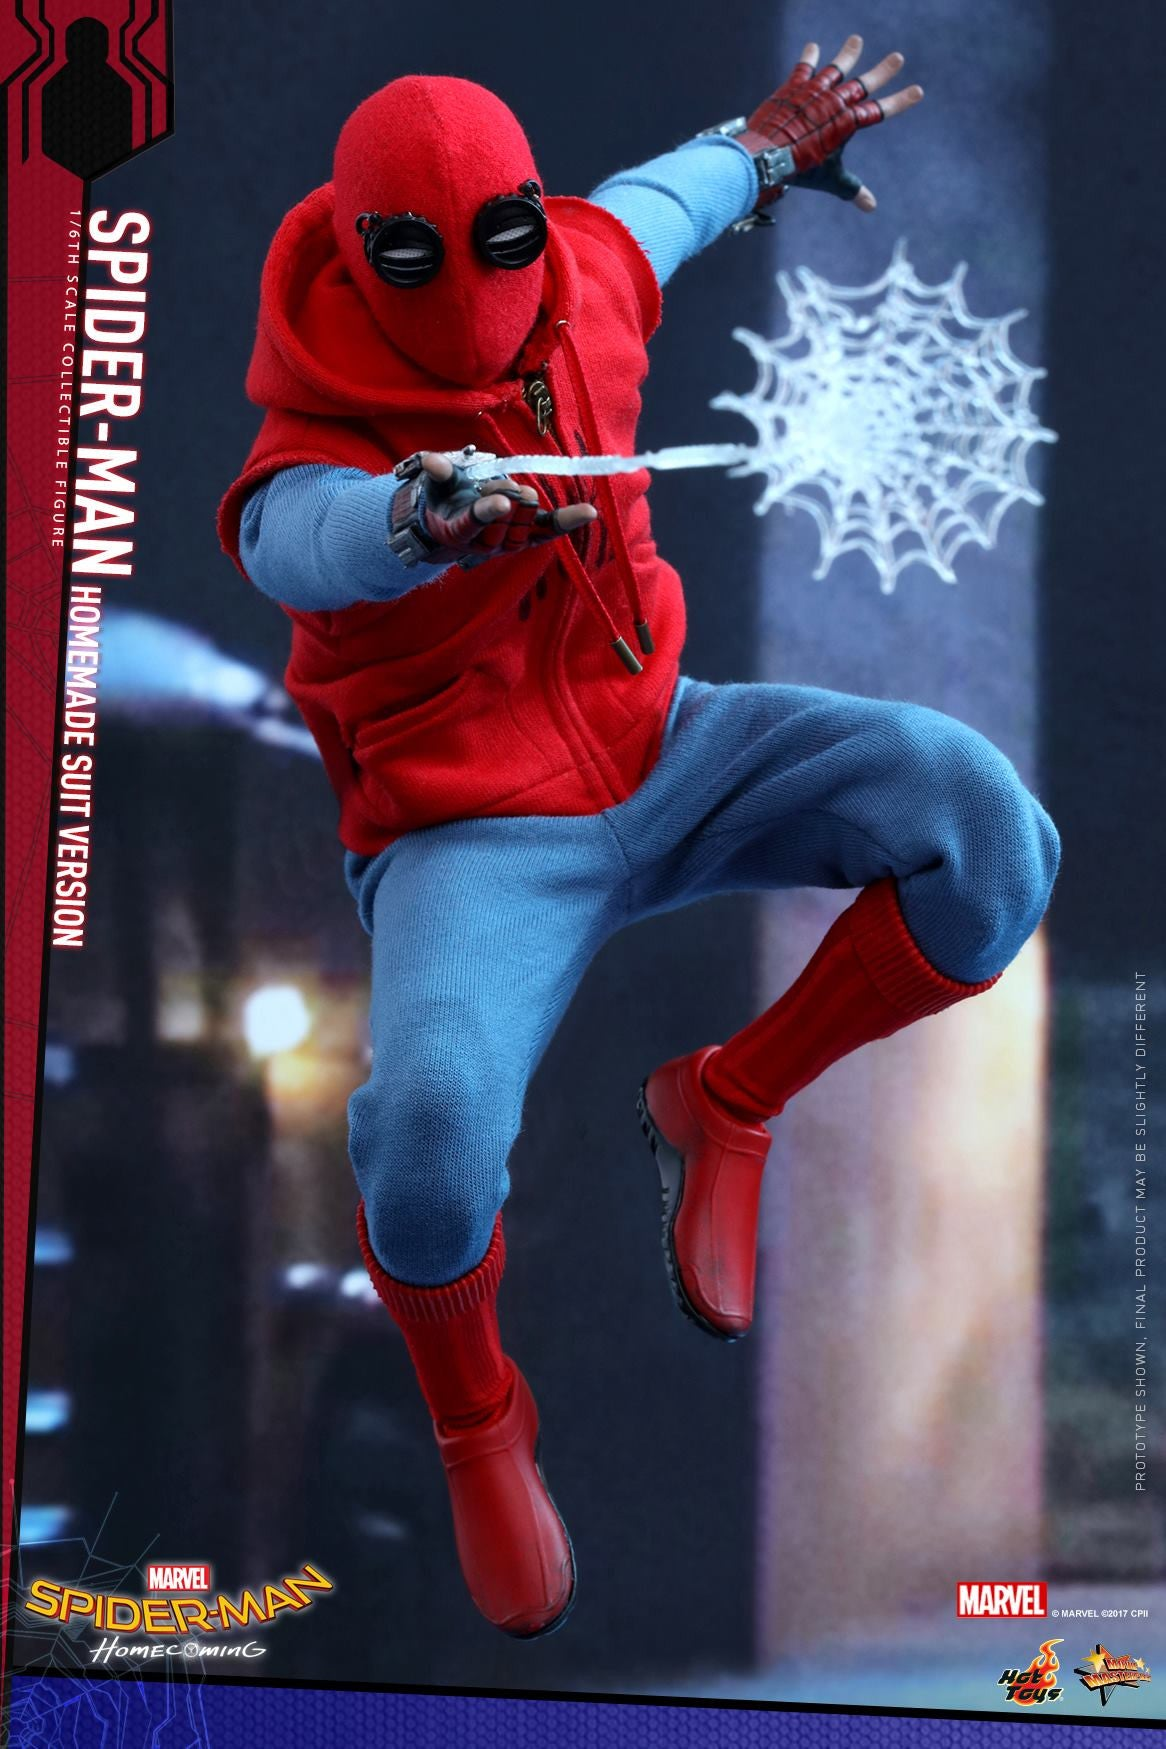 Hot Toys - MMS414 - Spider-Man: Homecoming - Spider-Man (Homemade Suit Version)